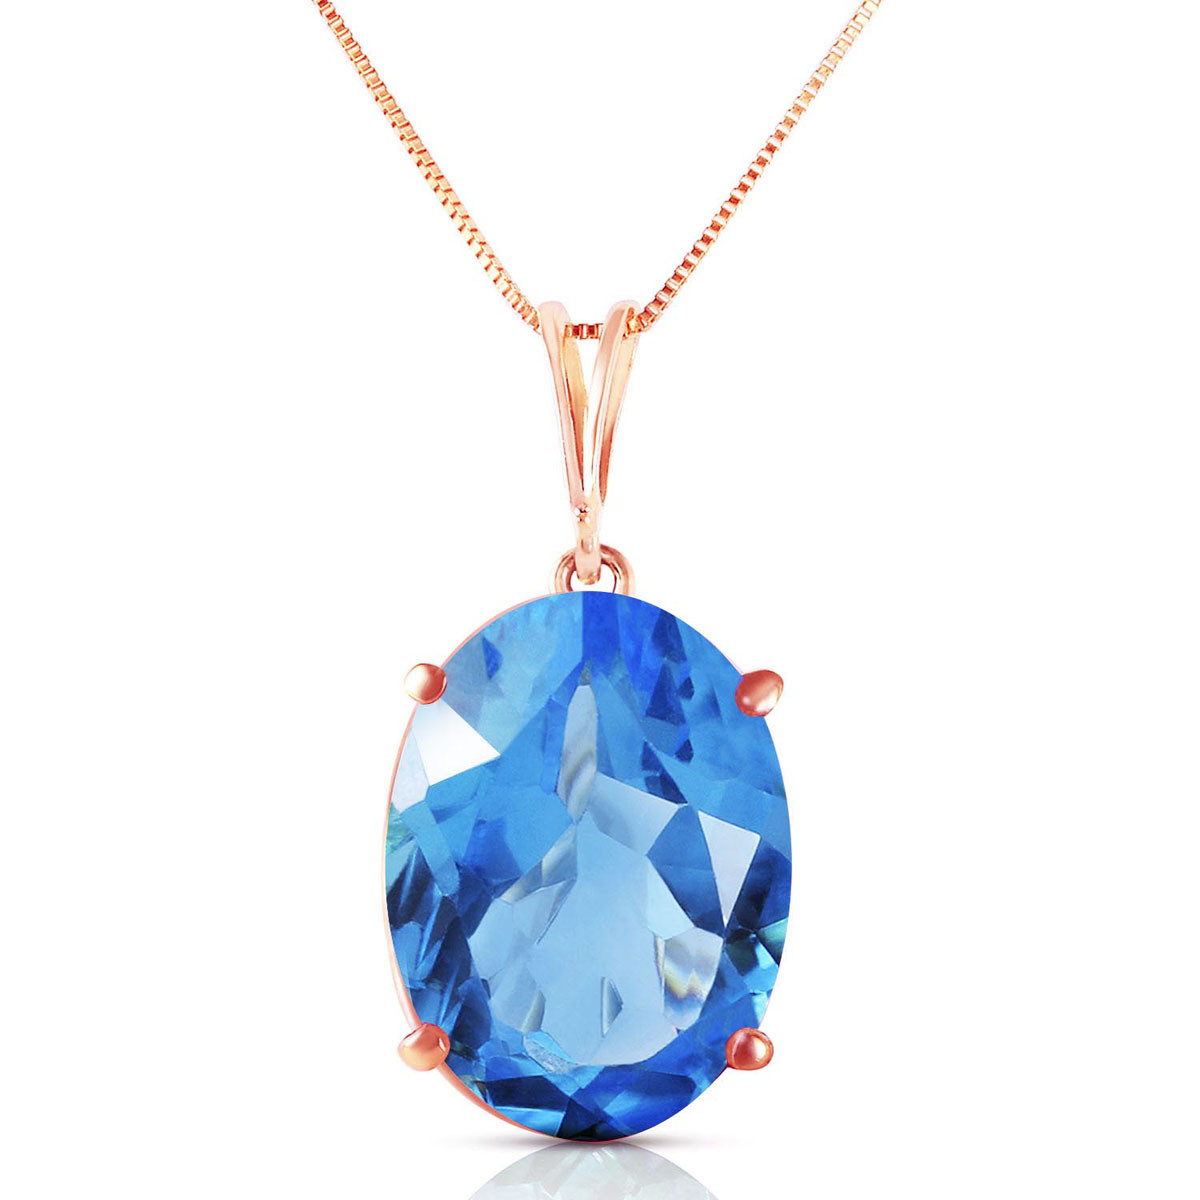 Blue Topaz Oval Pendant Necklace 8 ct in 9ct Rose Gold